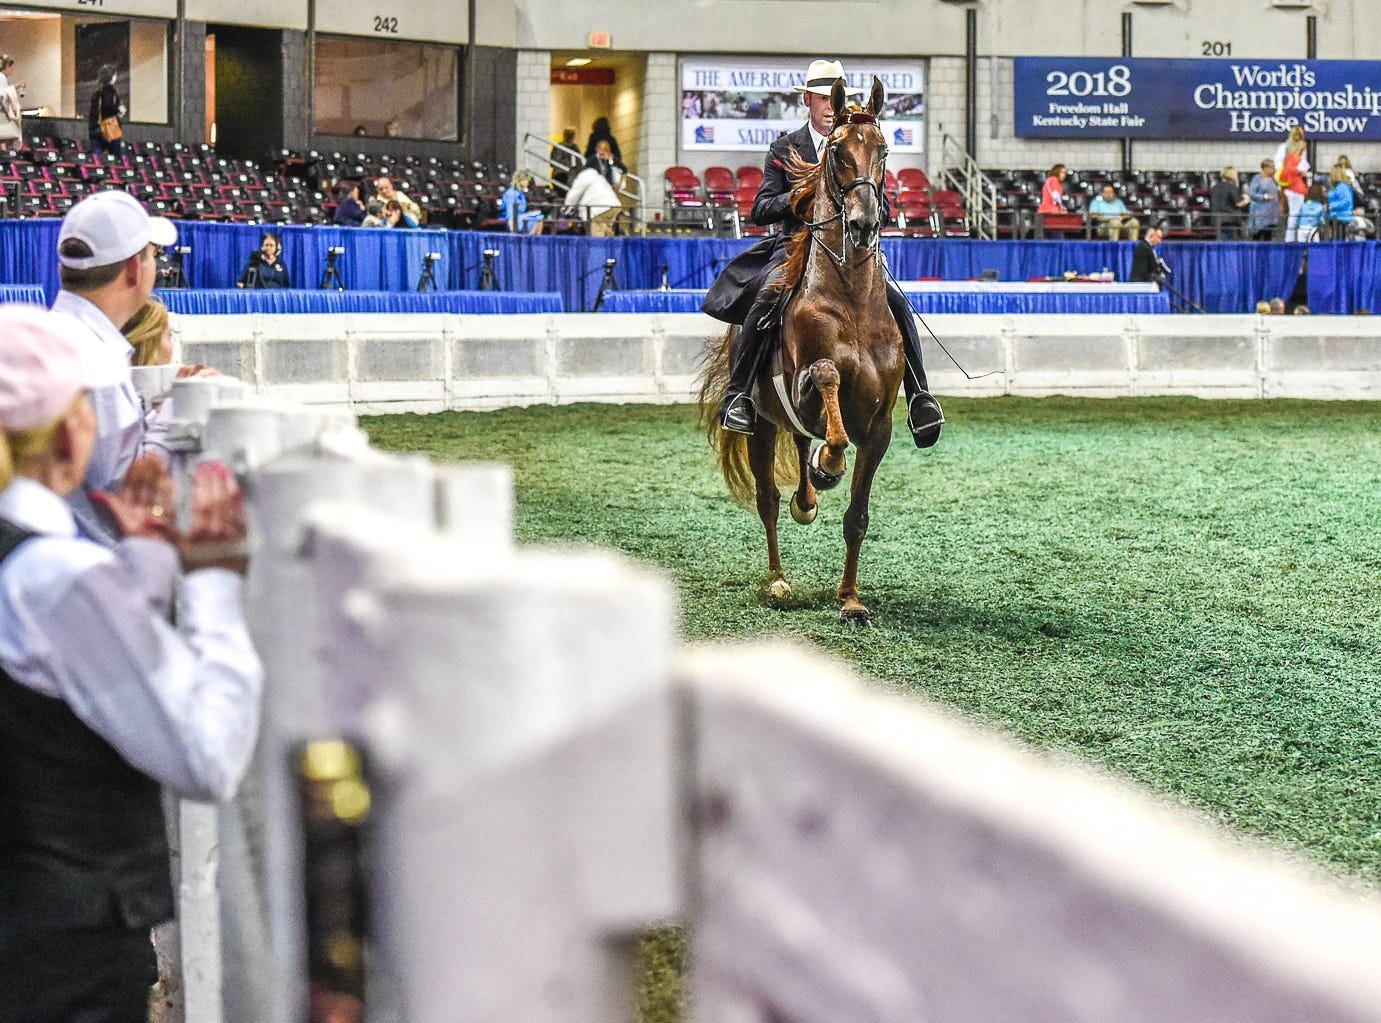 Owner Mary Gaylord McClean watches her home bred stallion, reining World Grand Champion 5 Gaited horse, Top Of The Mark win the stallion class with trainer Tre Lee